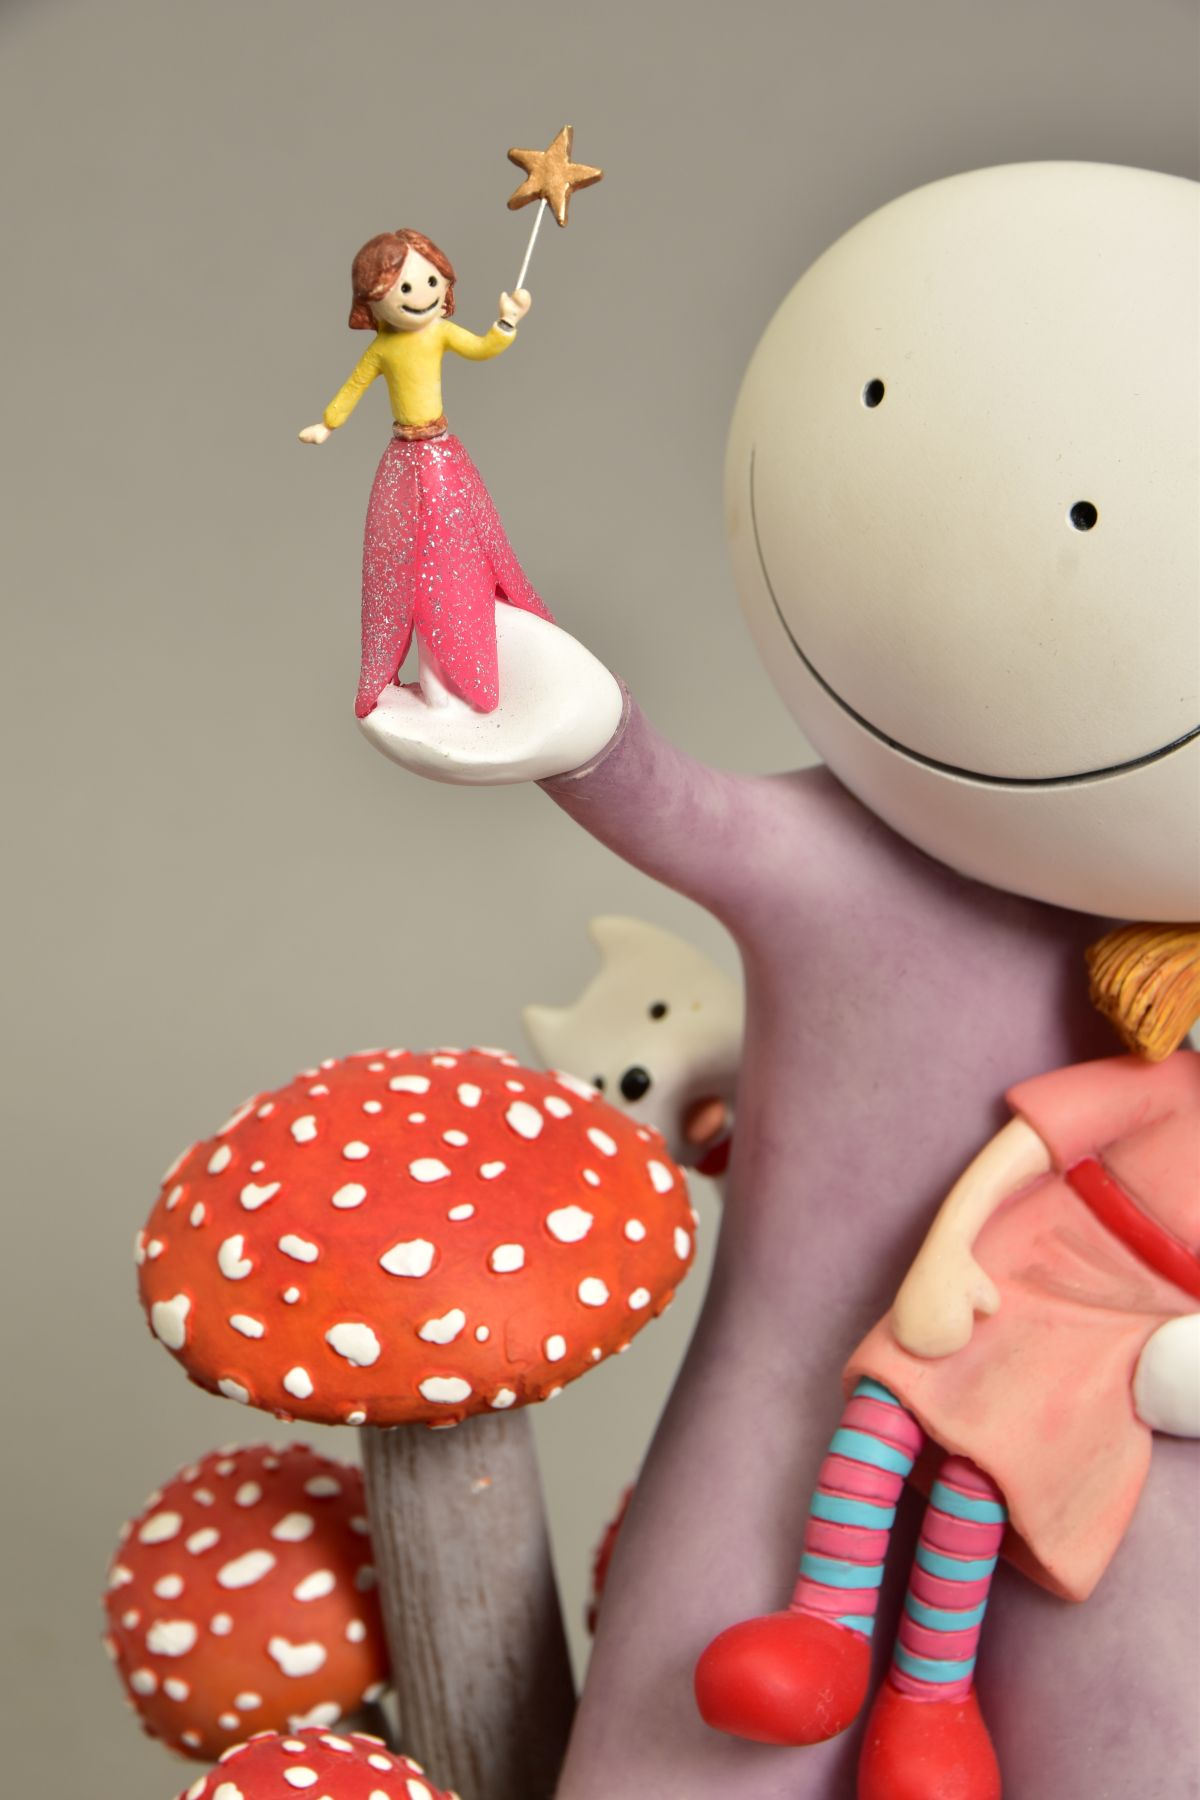 DOUG HYDE (BRITISH 1972) 'MAKE A WISH', limited edition sculpture of a girl and her doll, - Image 3 of 10